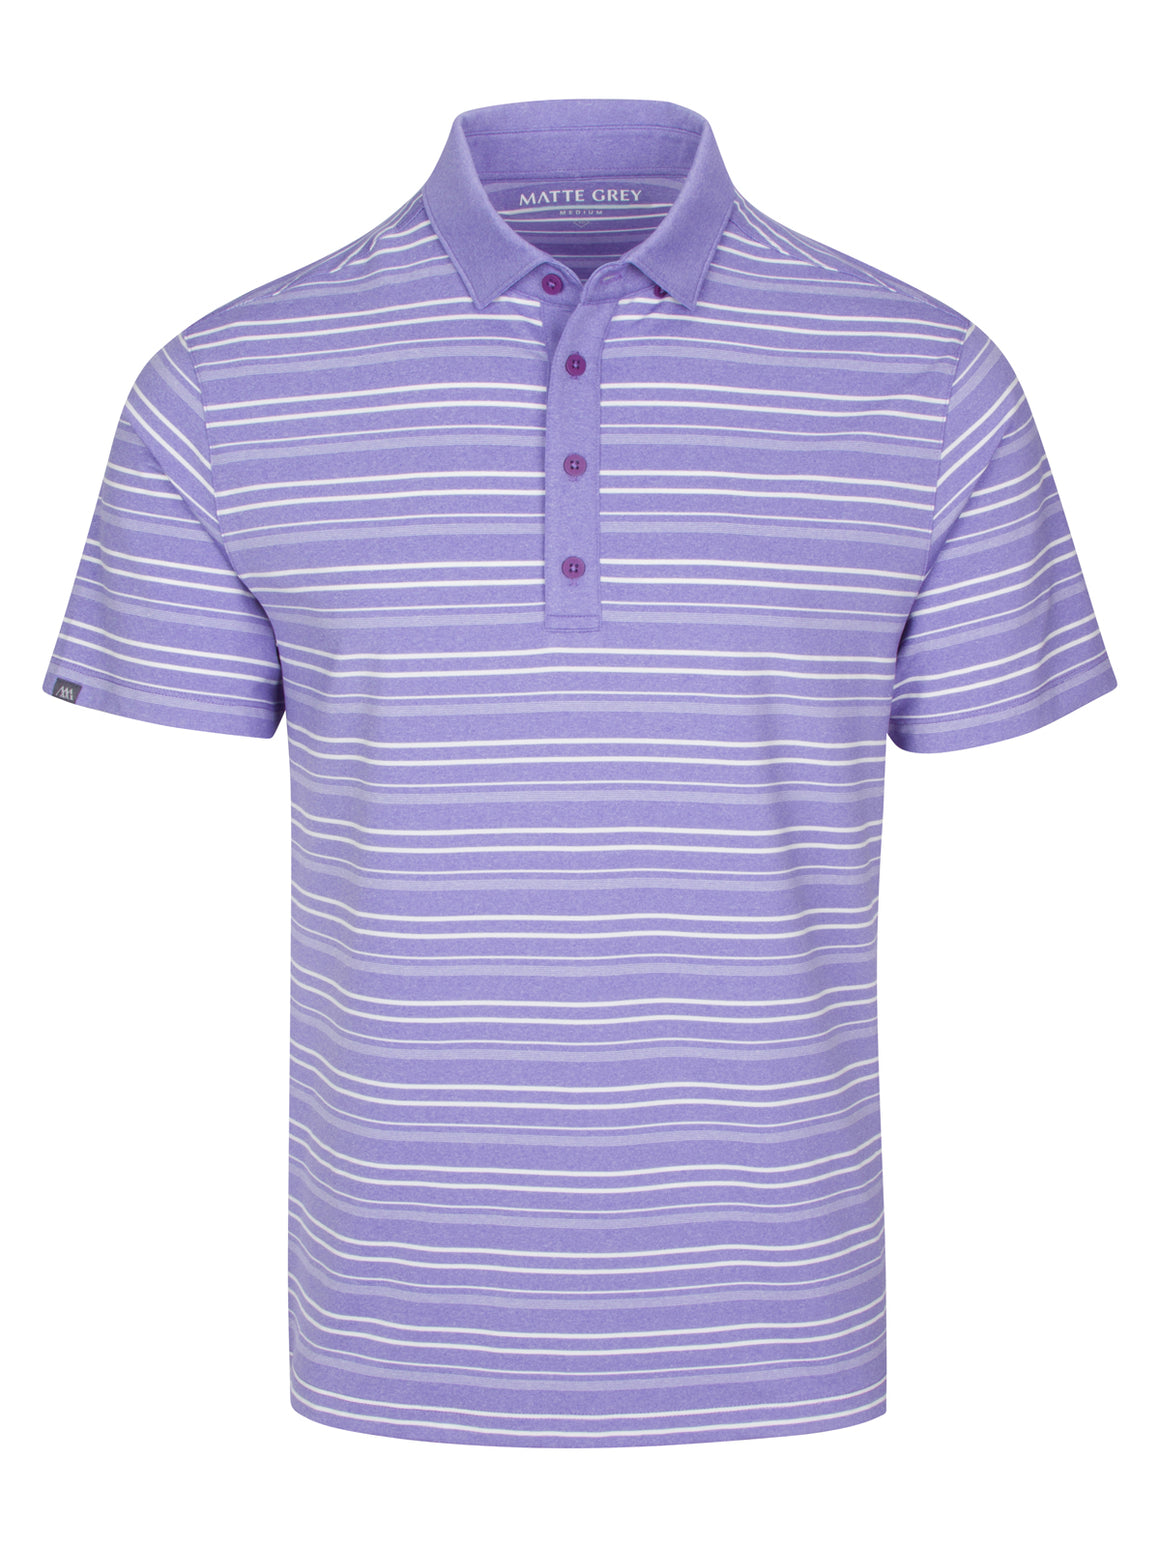 Coop - Amethyst Heather (White)